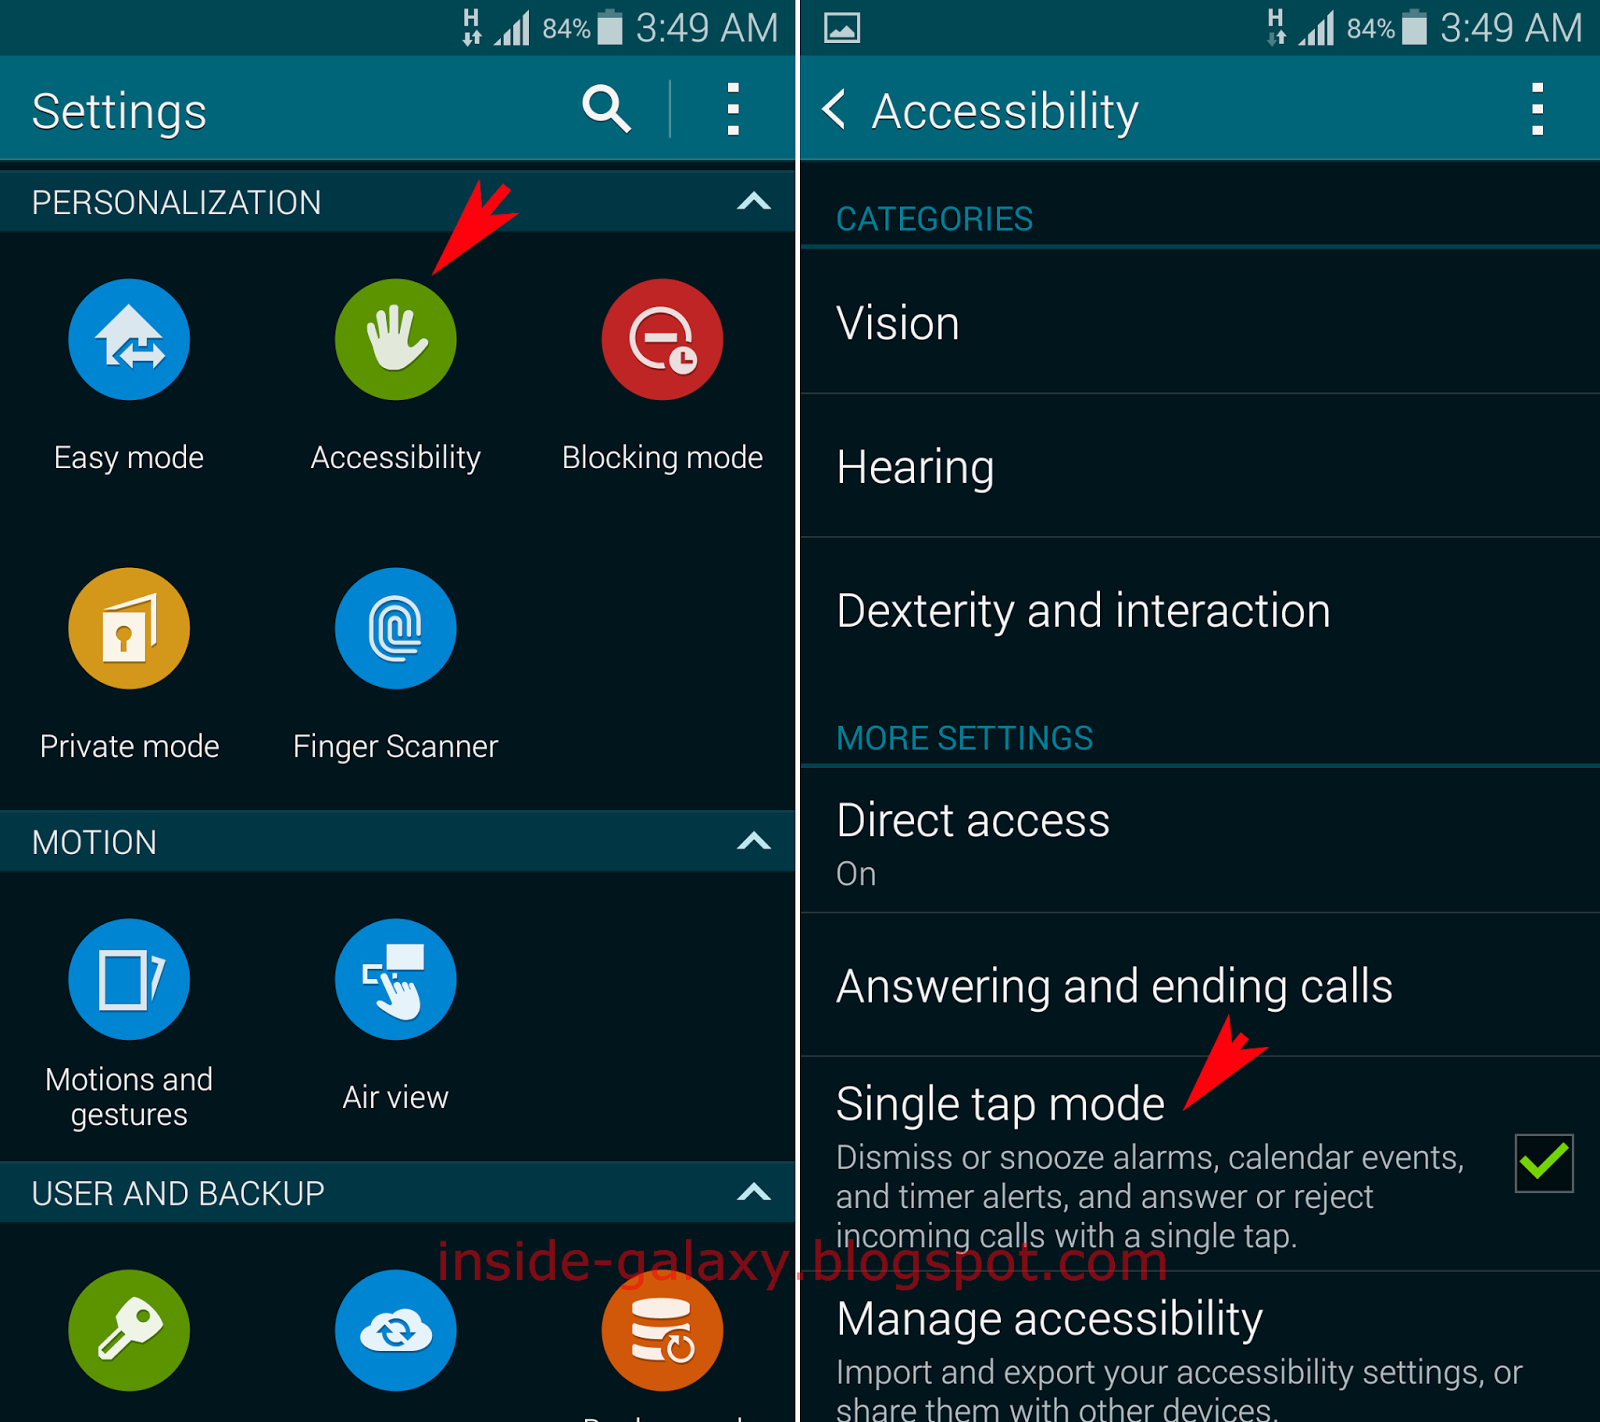 Inside Galaxy: Samsung Galaxy S5: How To Enable And Use